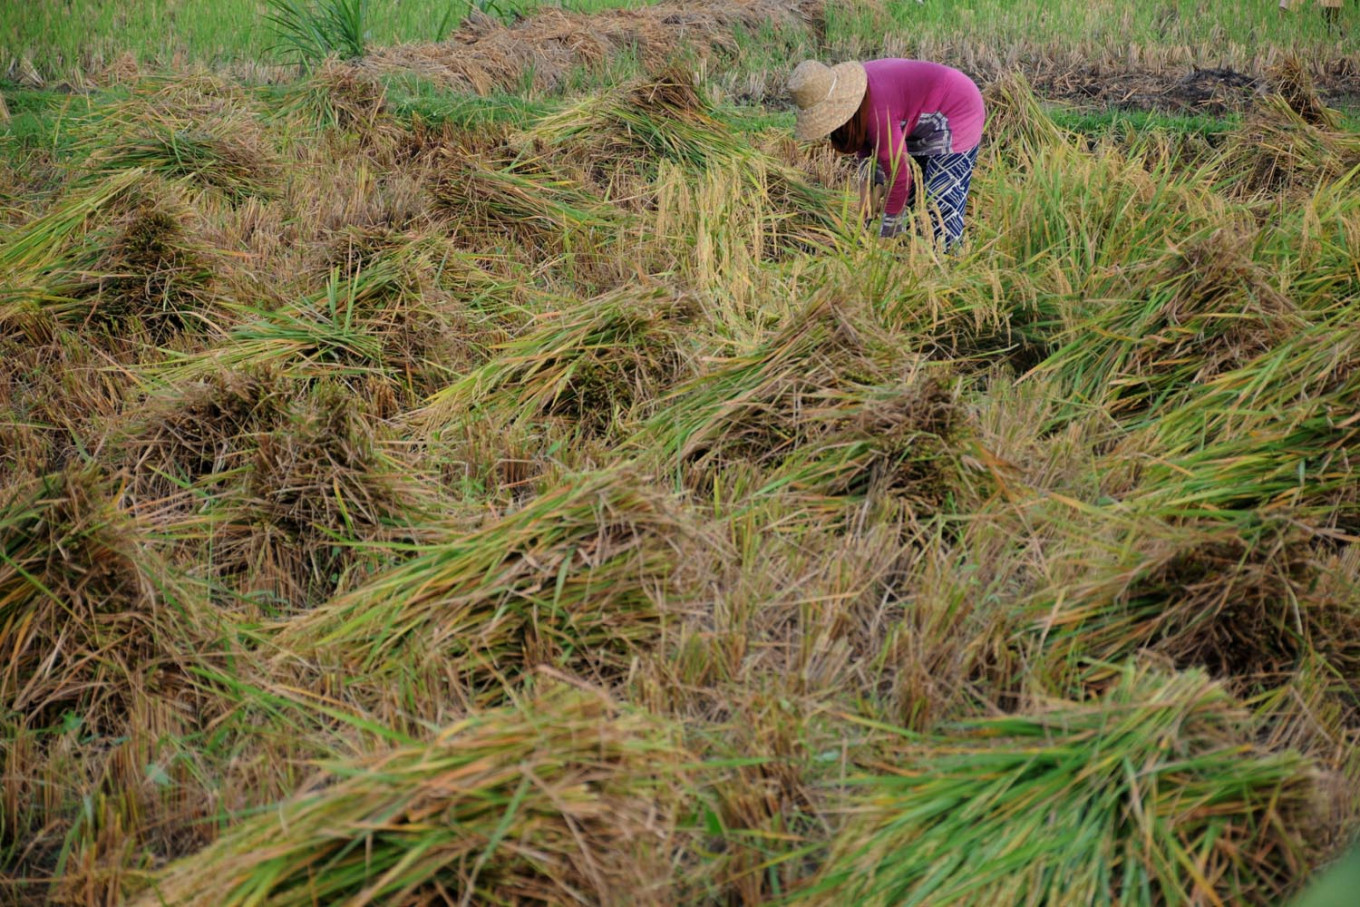 Farmers benefit from e-learning despite lackluster internet access